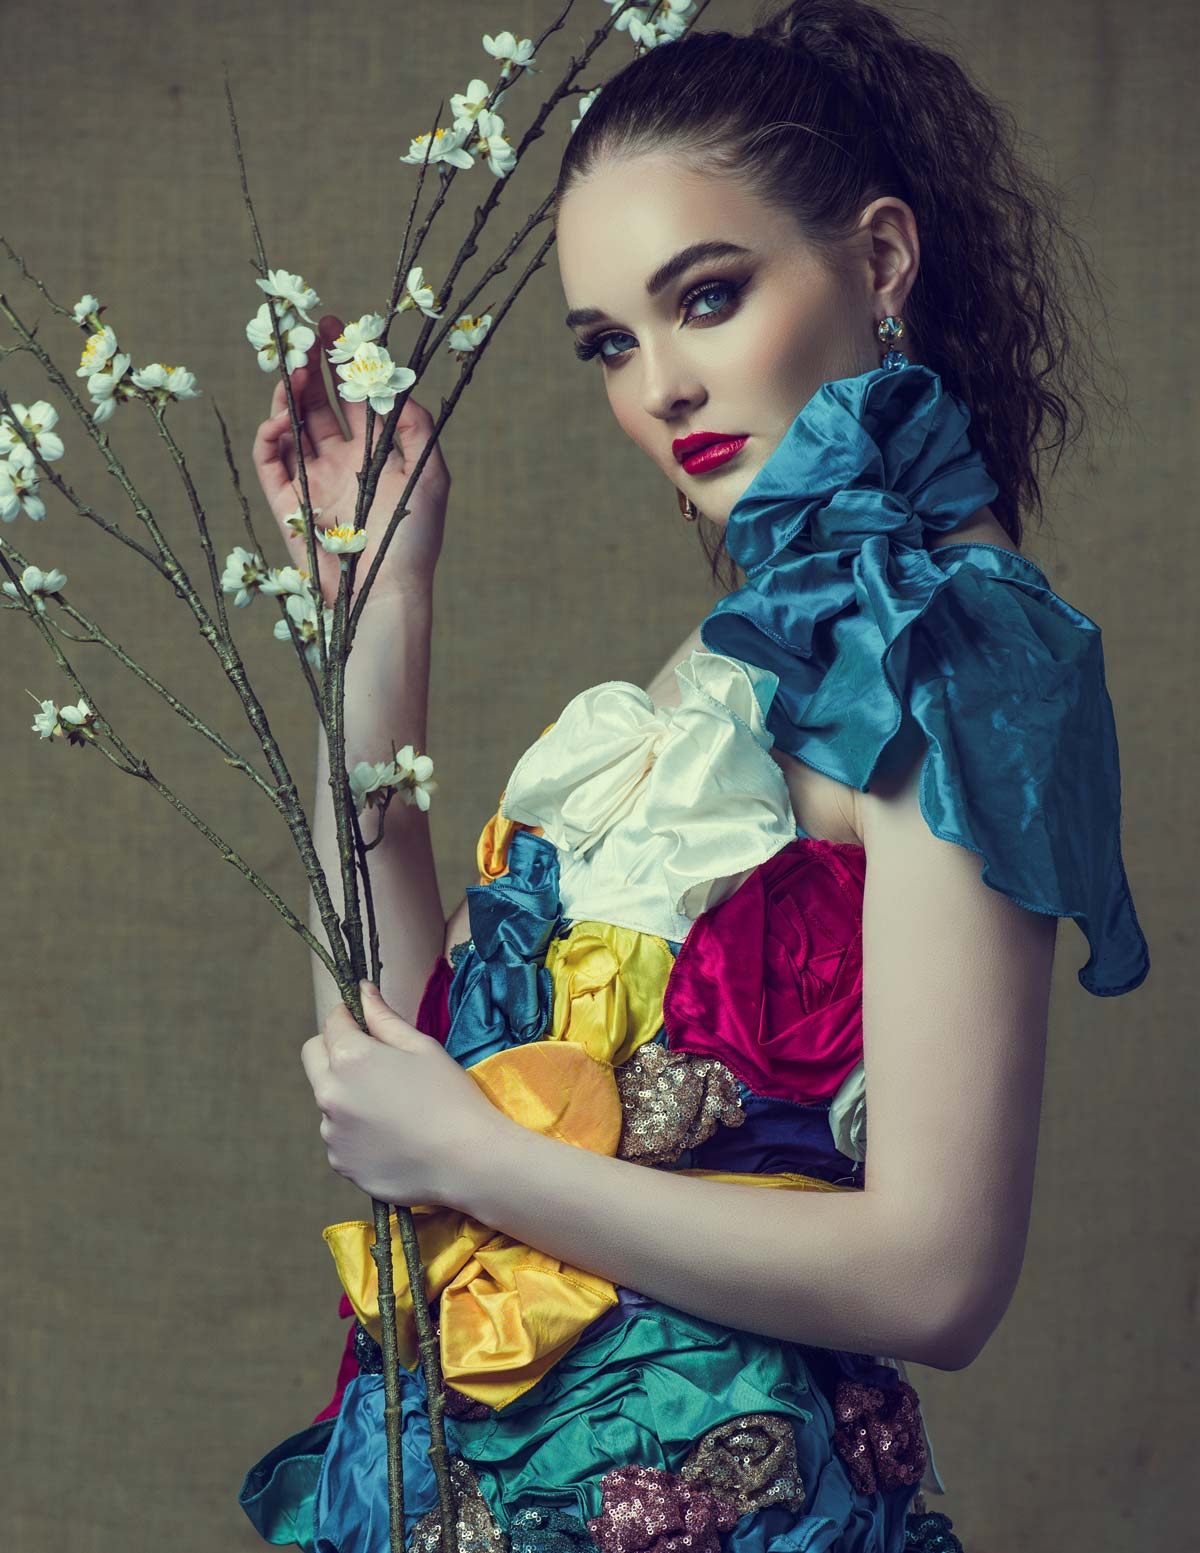 The Sustainability project: floral wonderland dress in colour